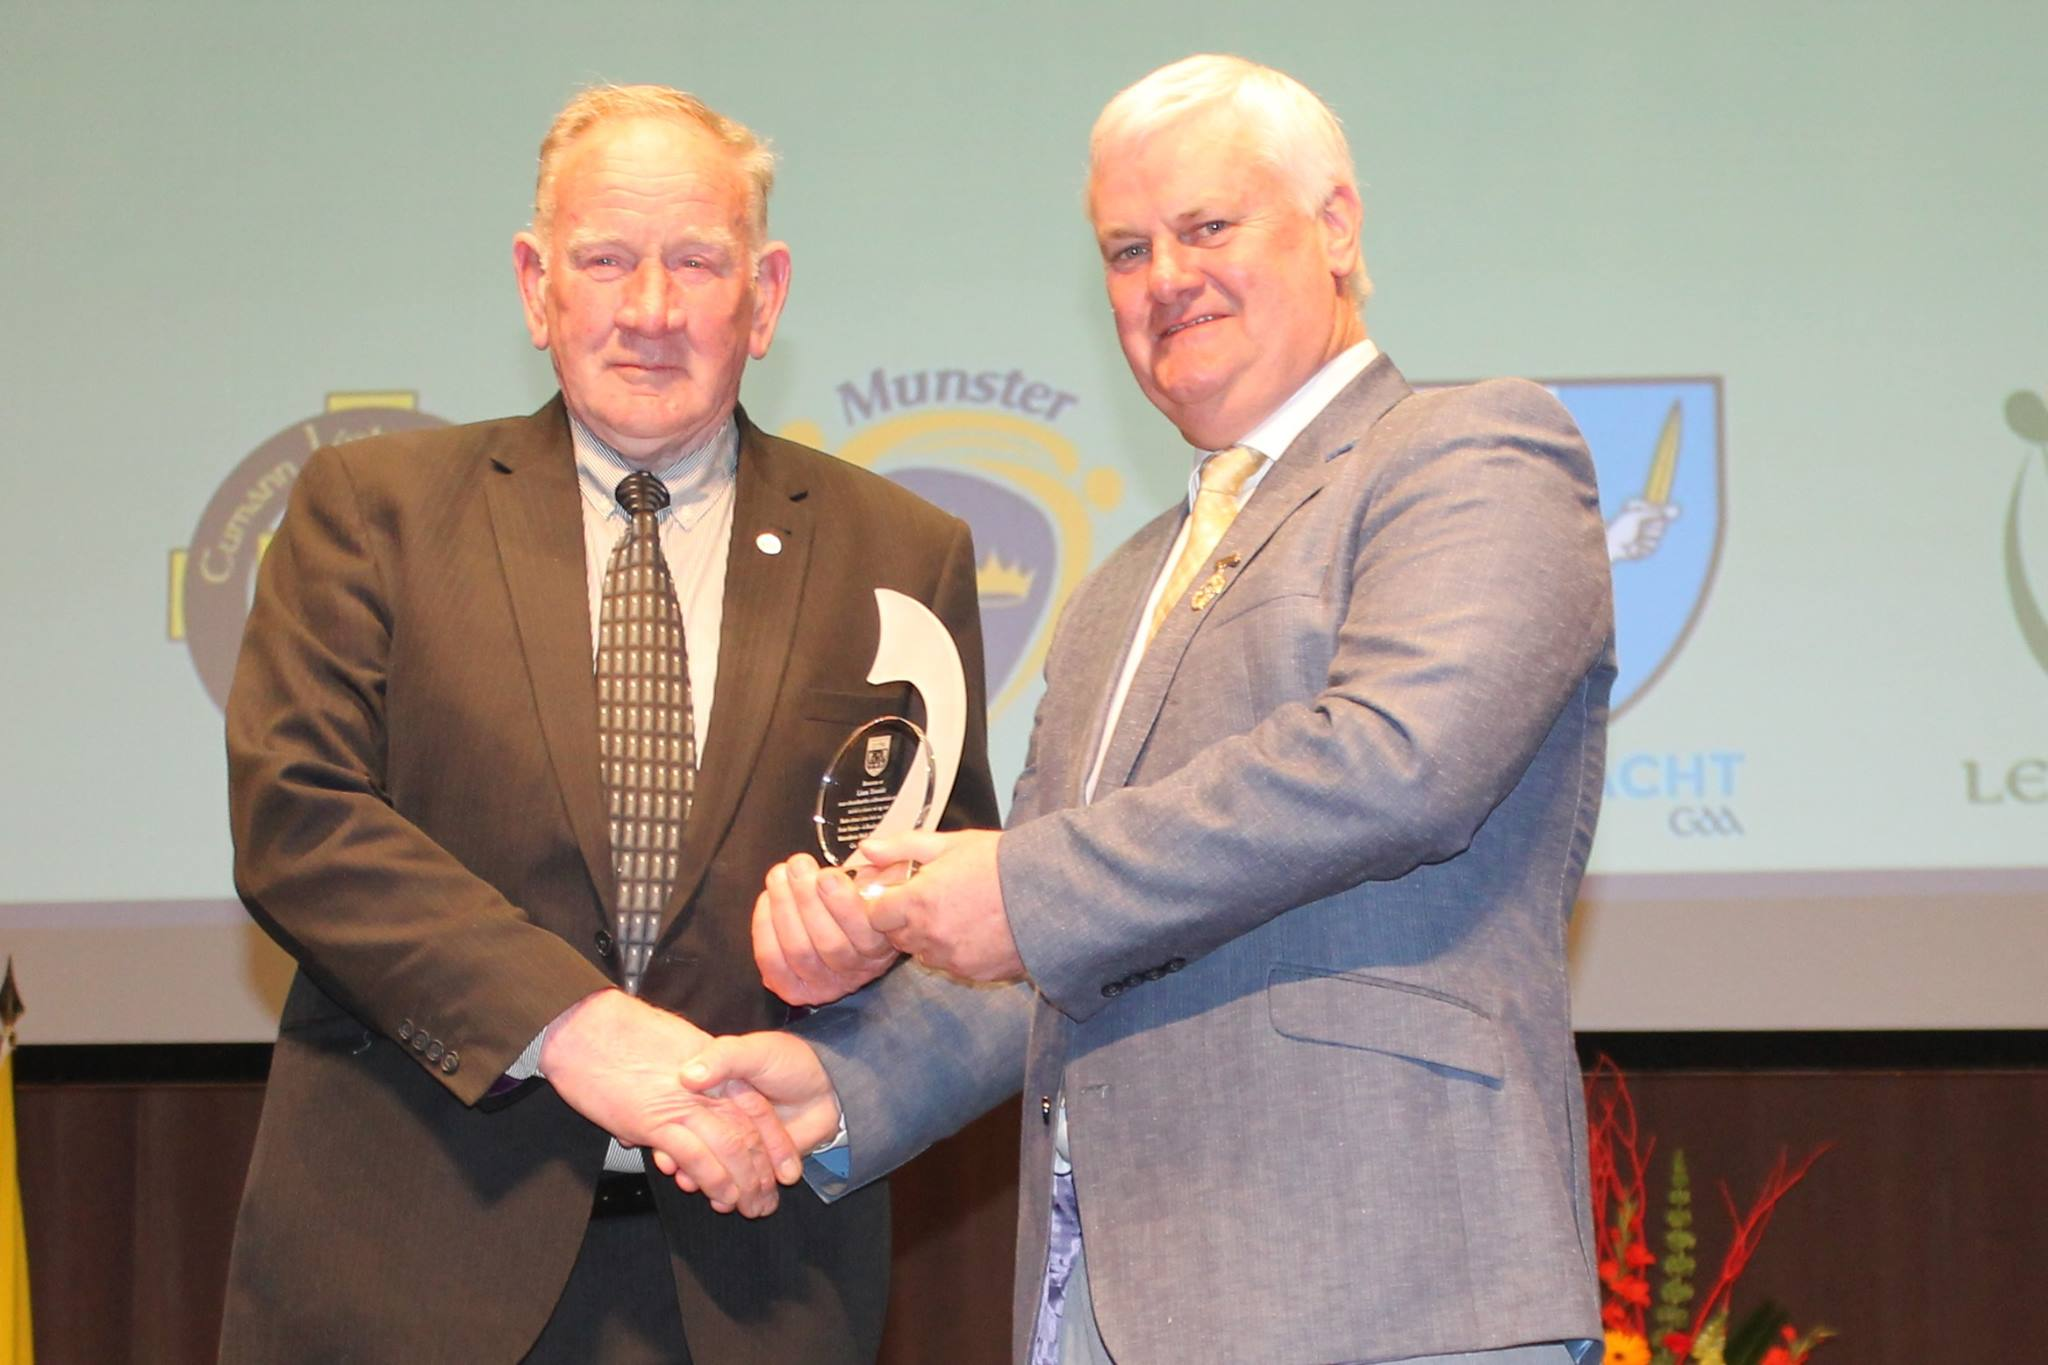 Life-long Service Award for Derry's Willie Turner